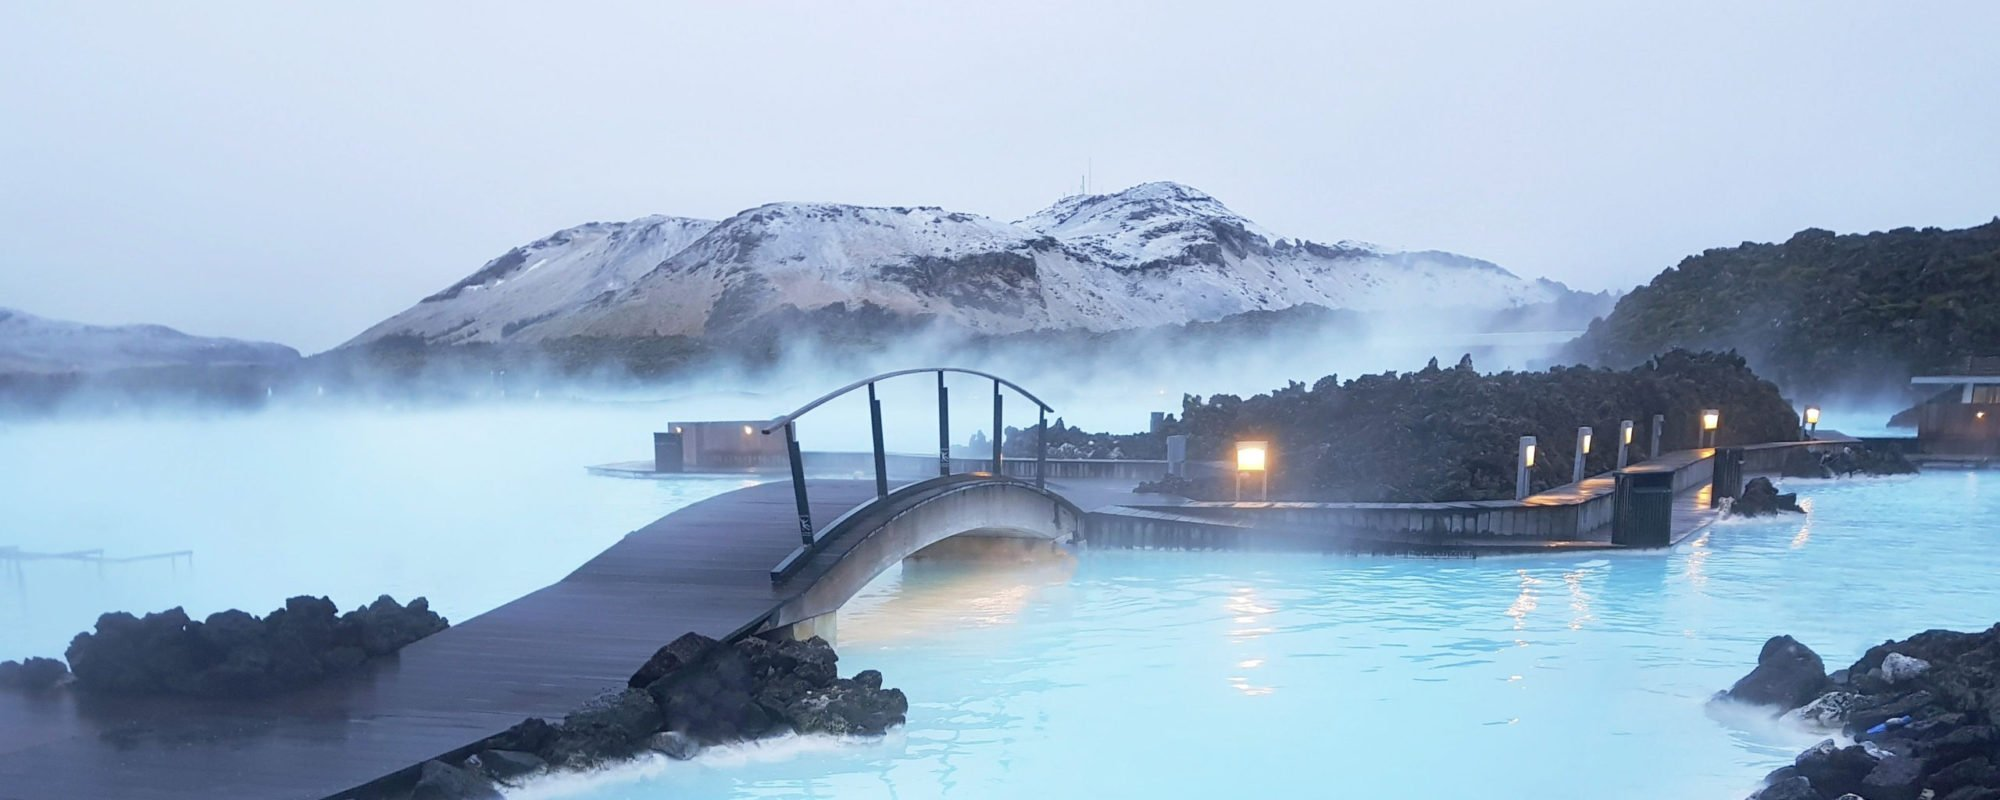 How to Visit the Blue Lagoon from Reykjavik